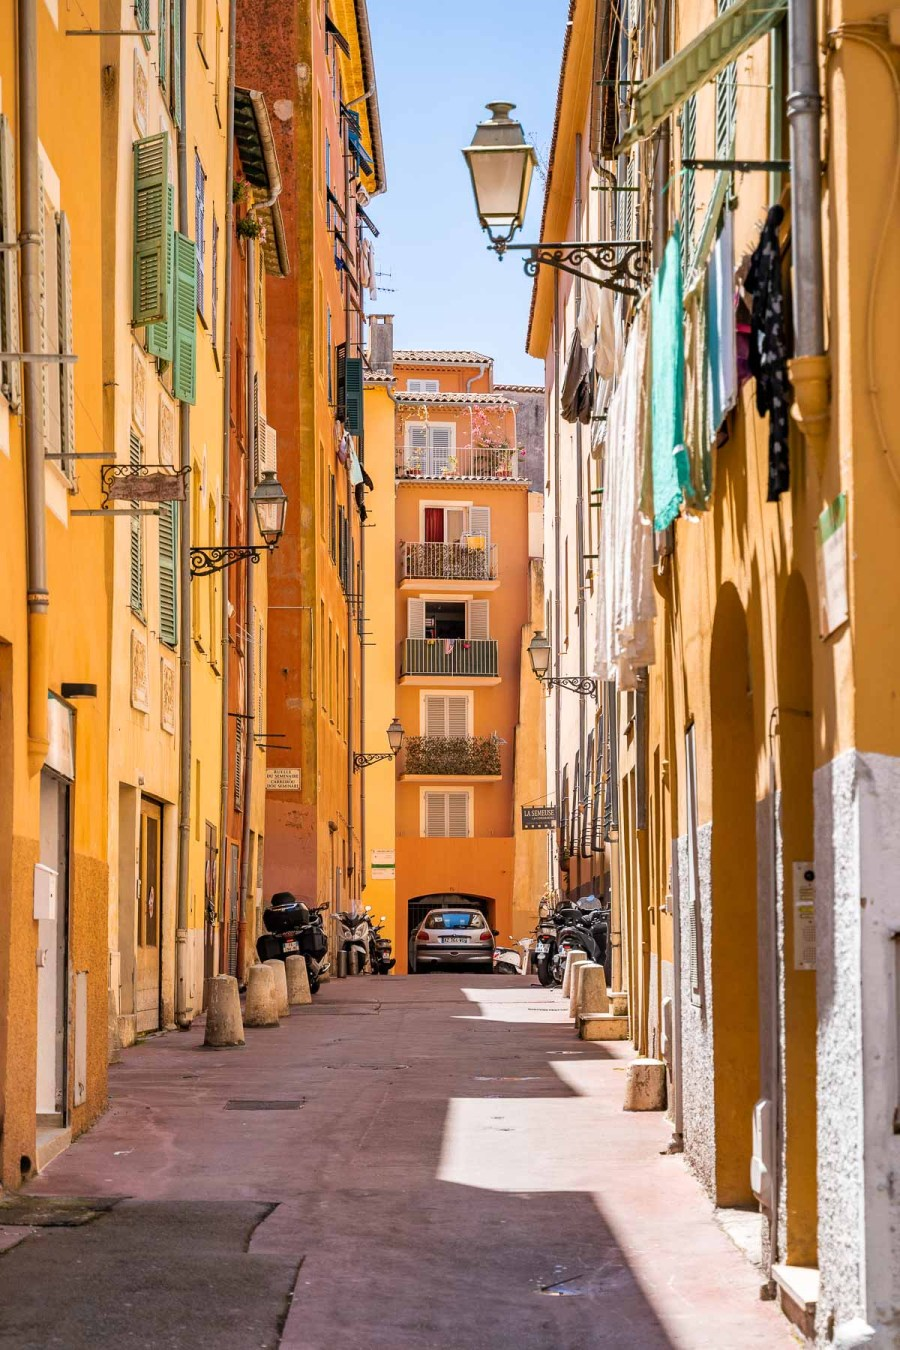 Colorful buildings in the Old Town of Nice, France